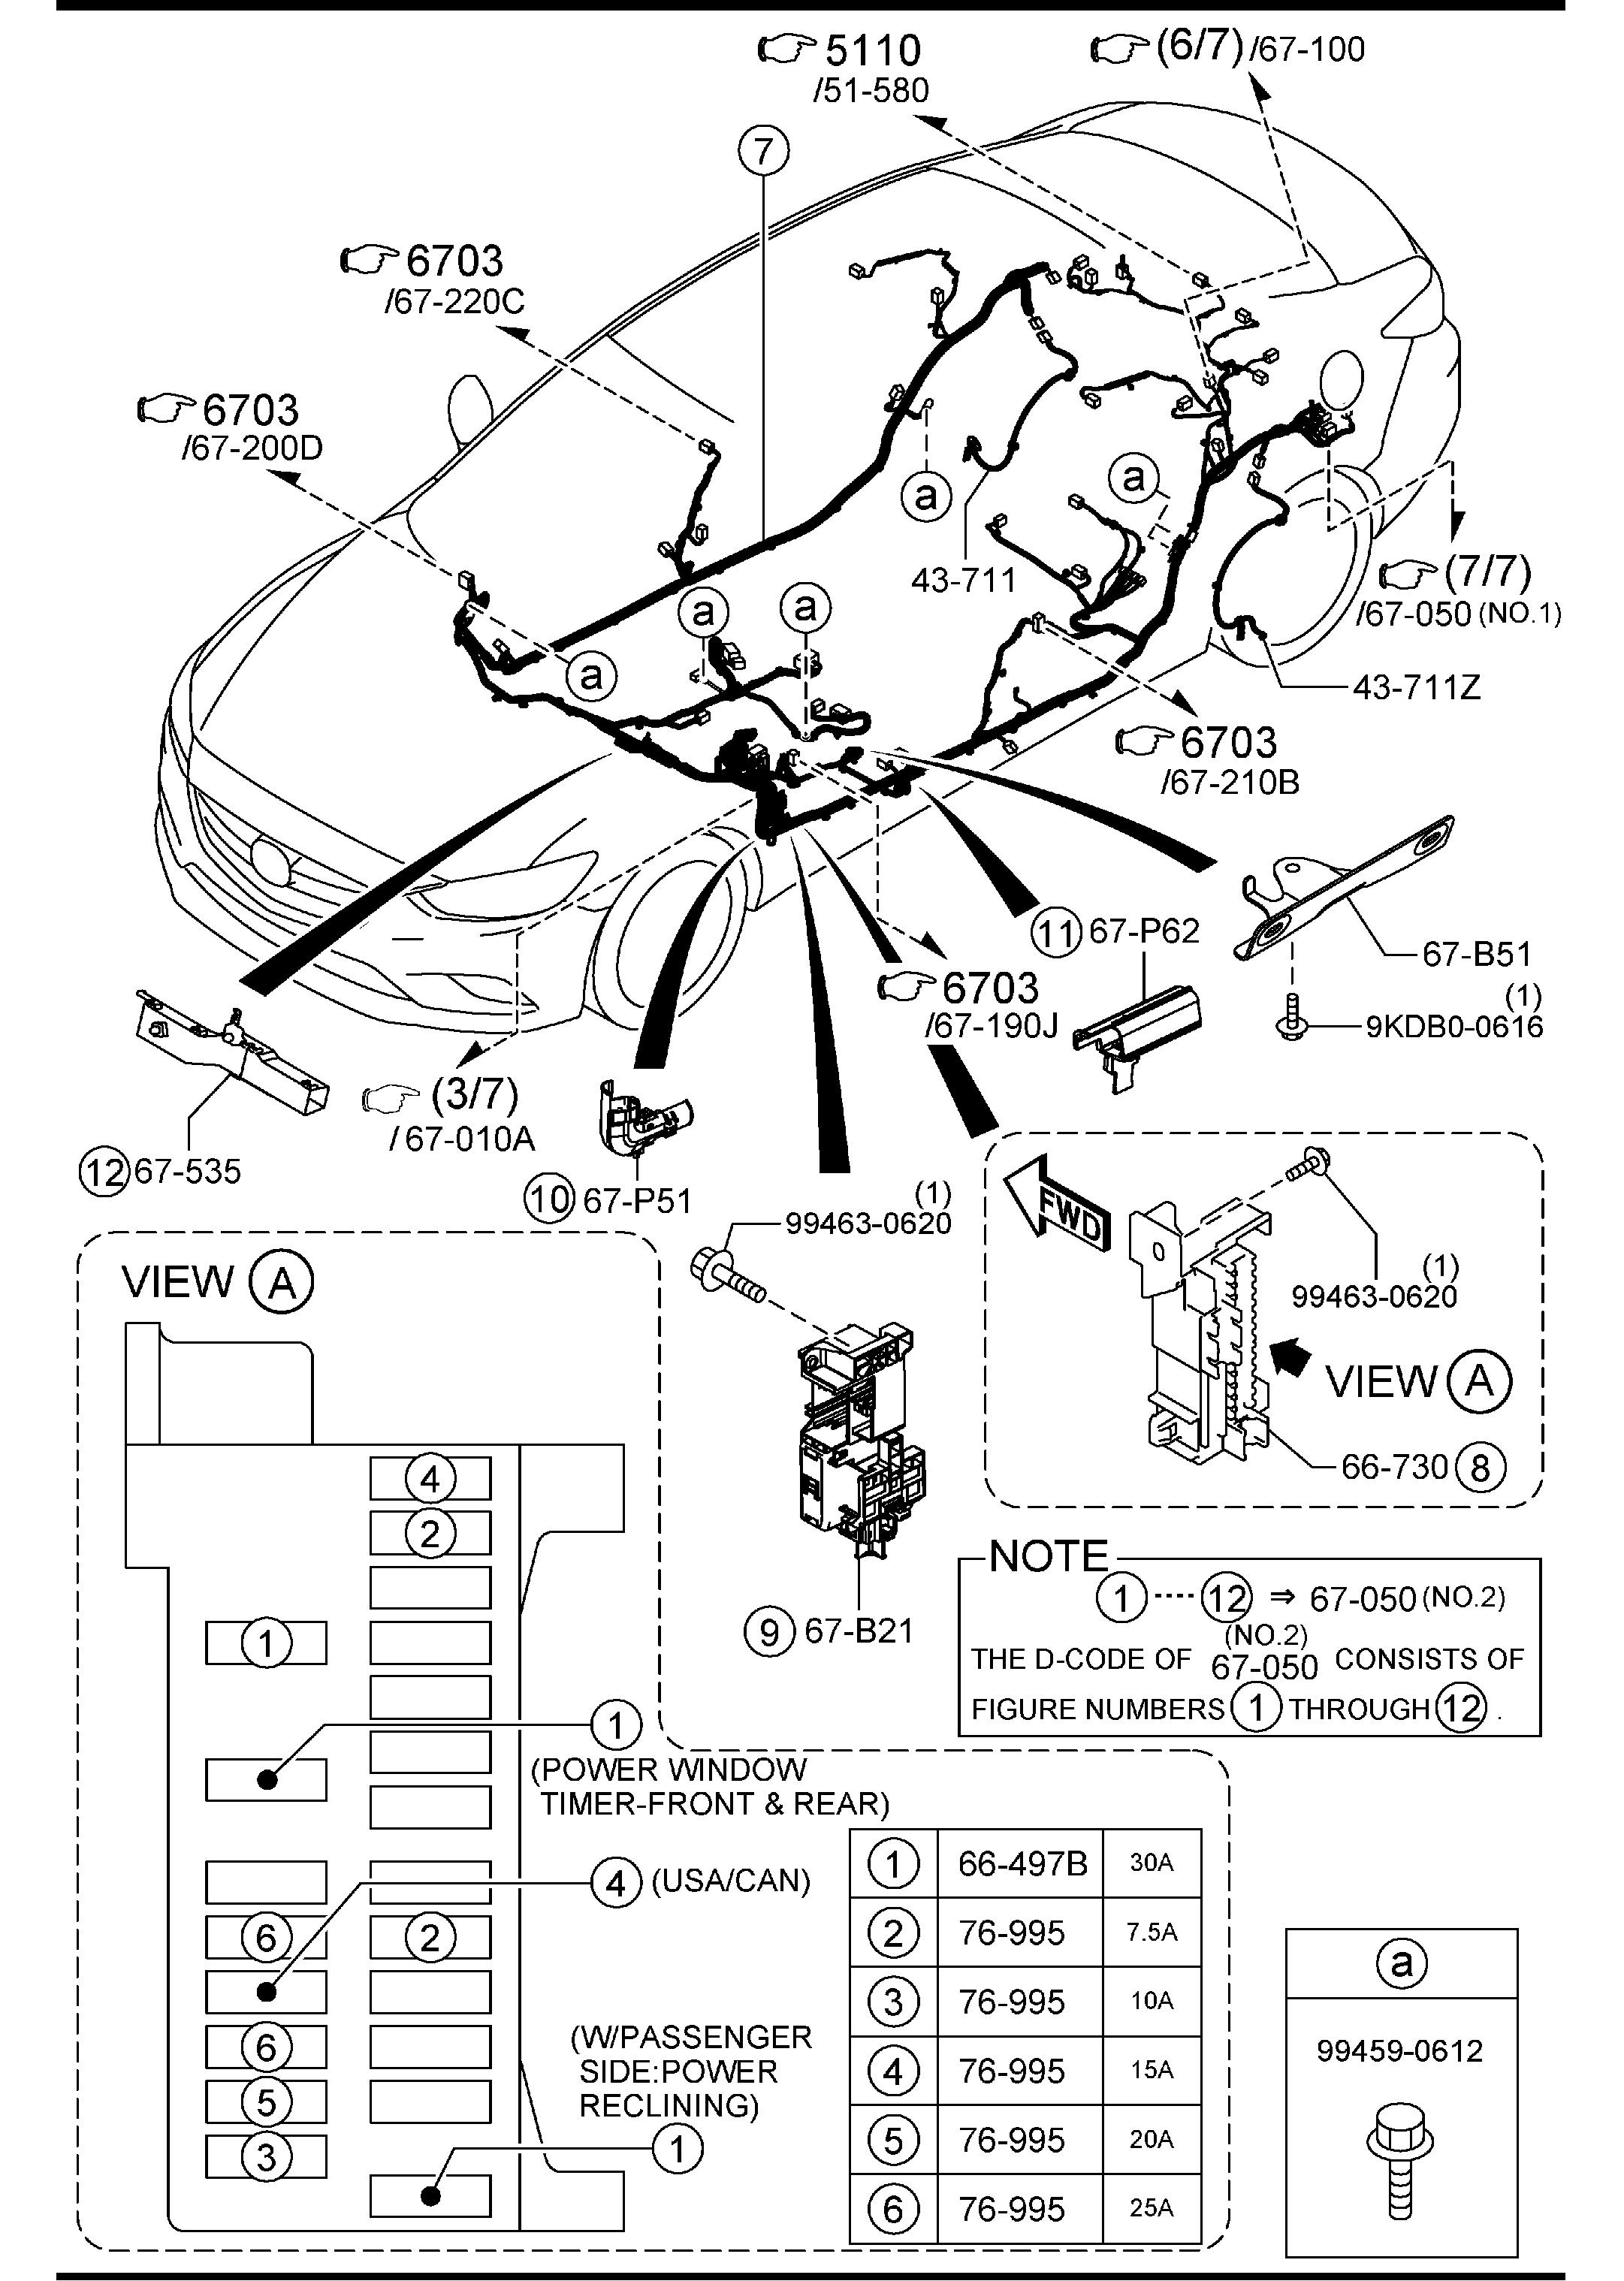 2014 ford f150 ecoboost fuse box diagram html